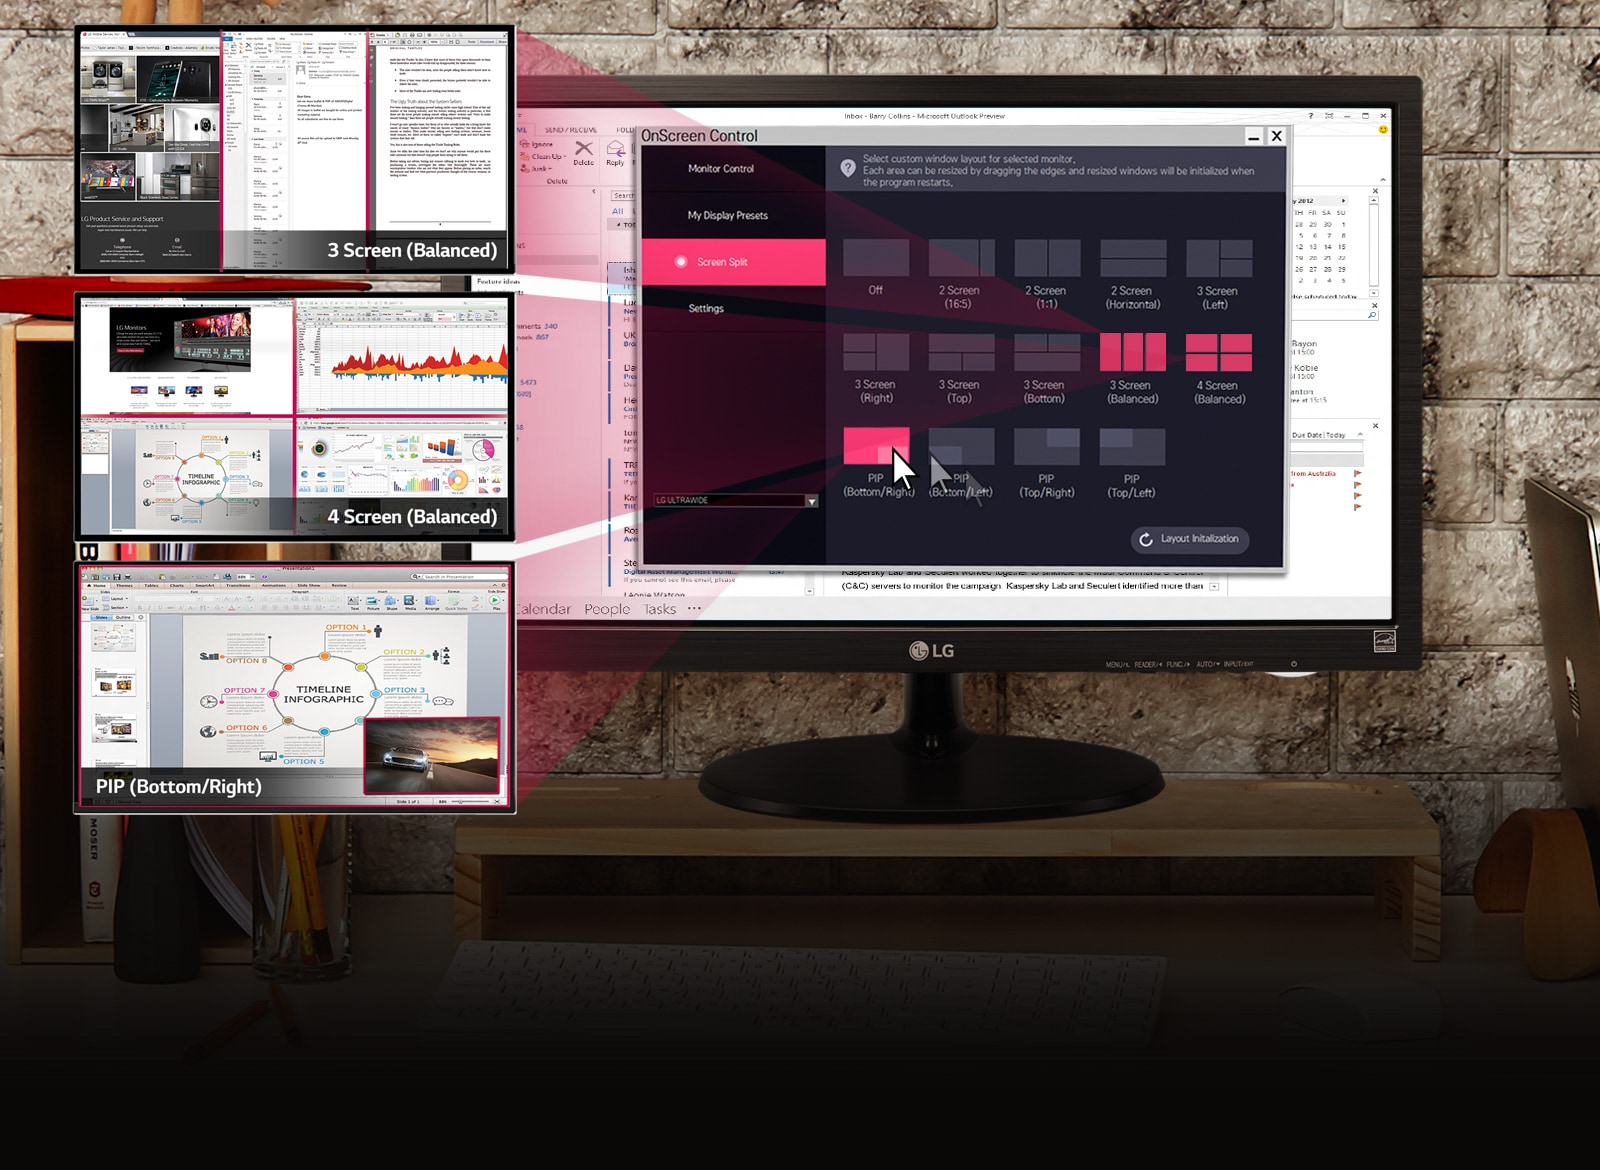 Customize Your Workspace for Multitasking1